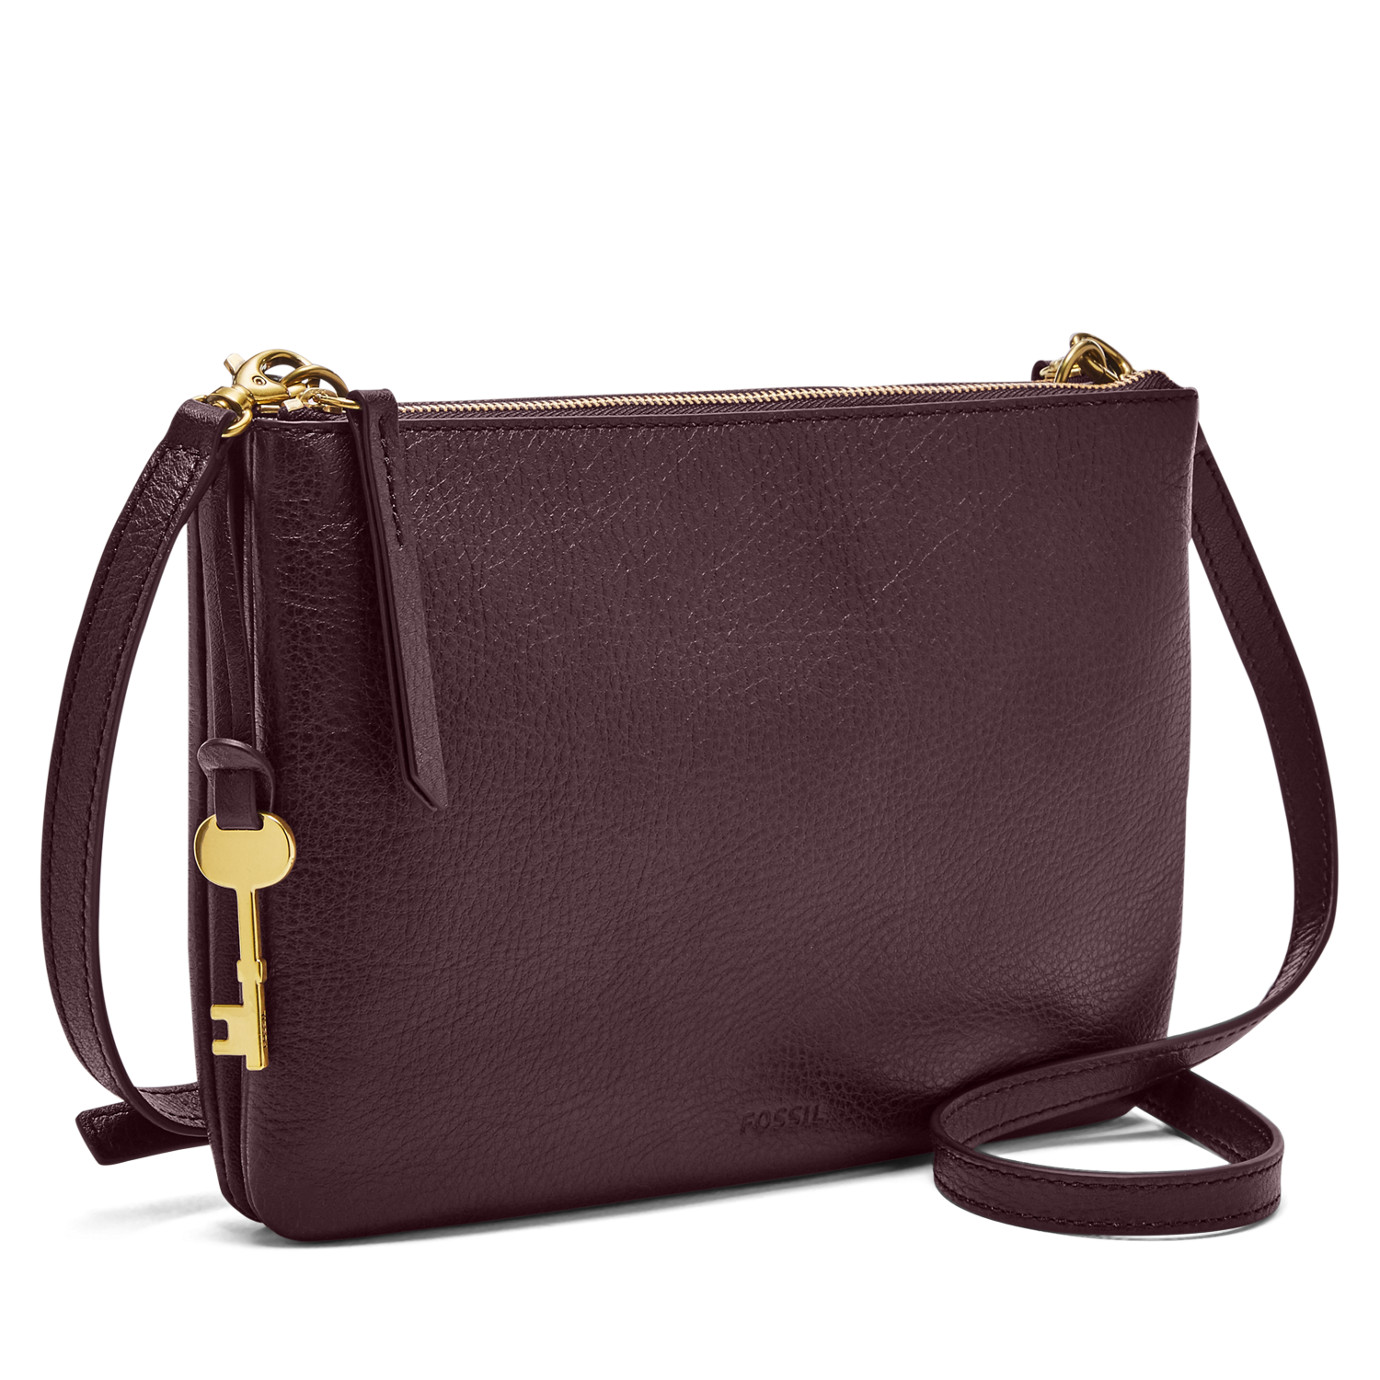 Devon Crossbody